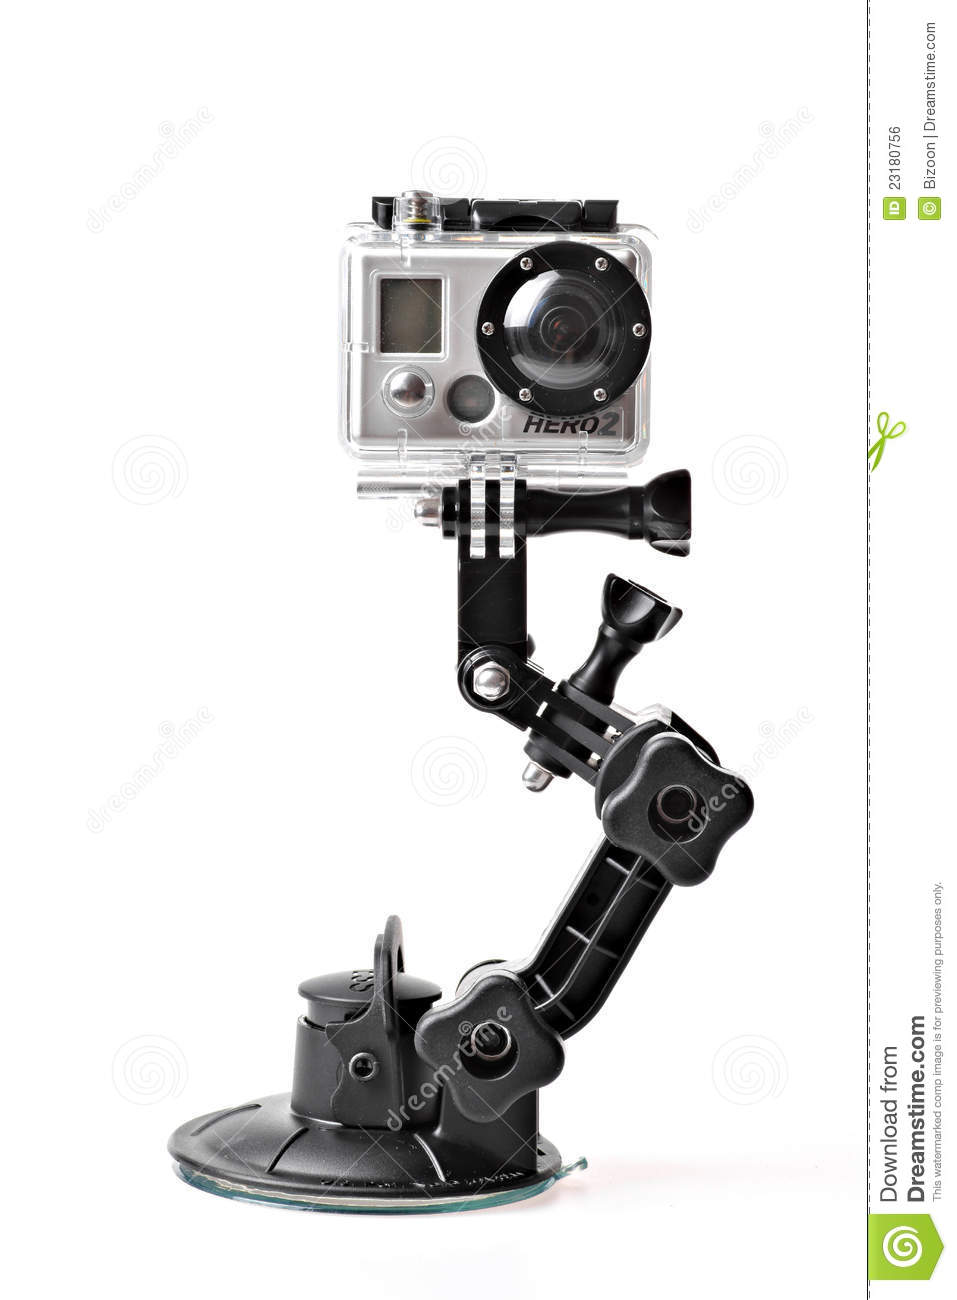 GoPro HERO2 action camera editorial photo. Image of